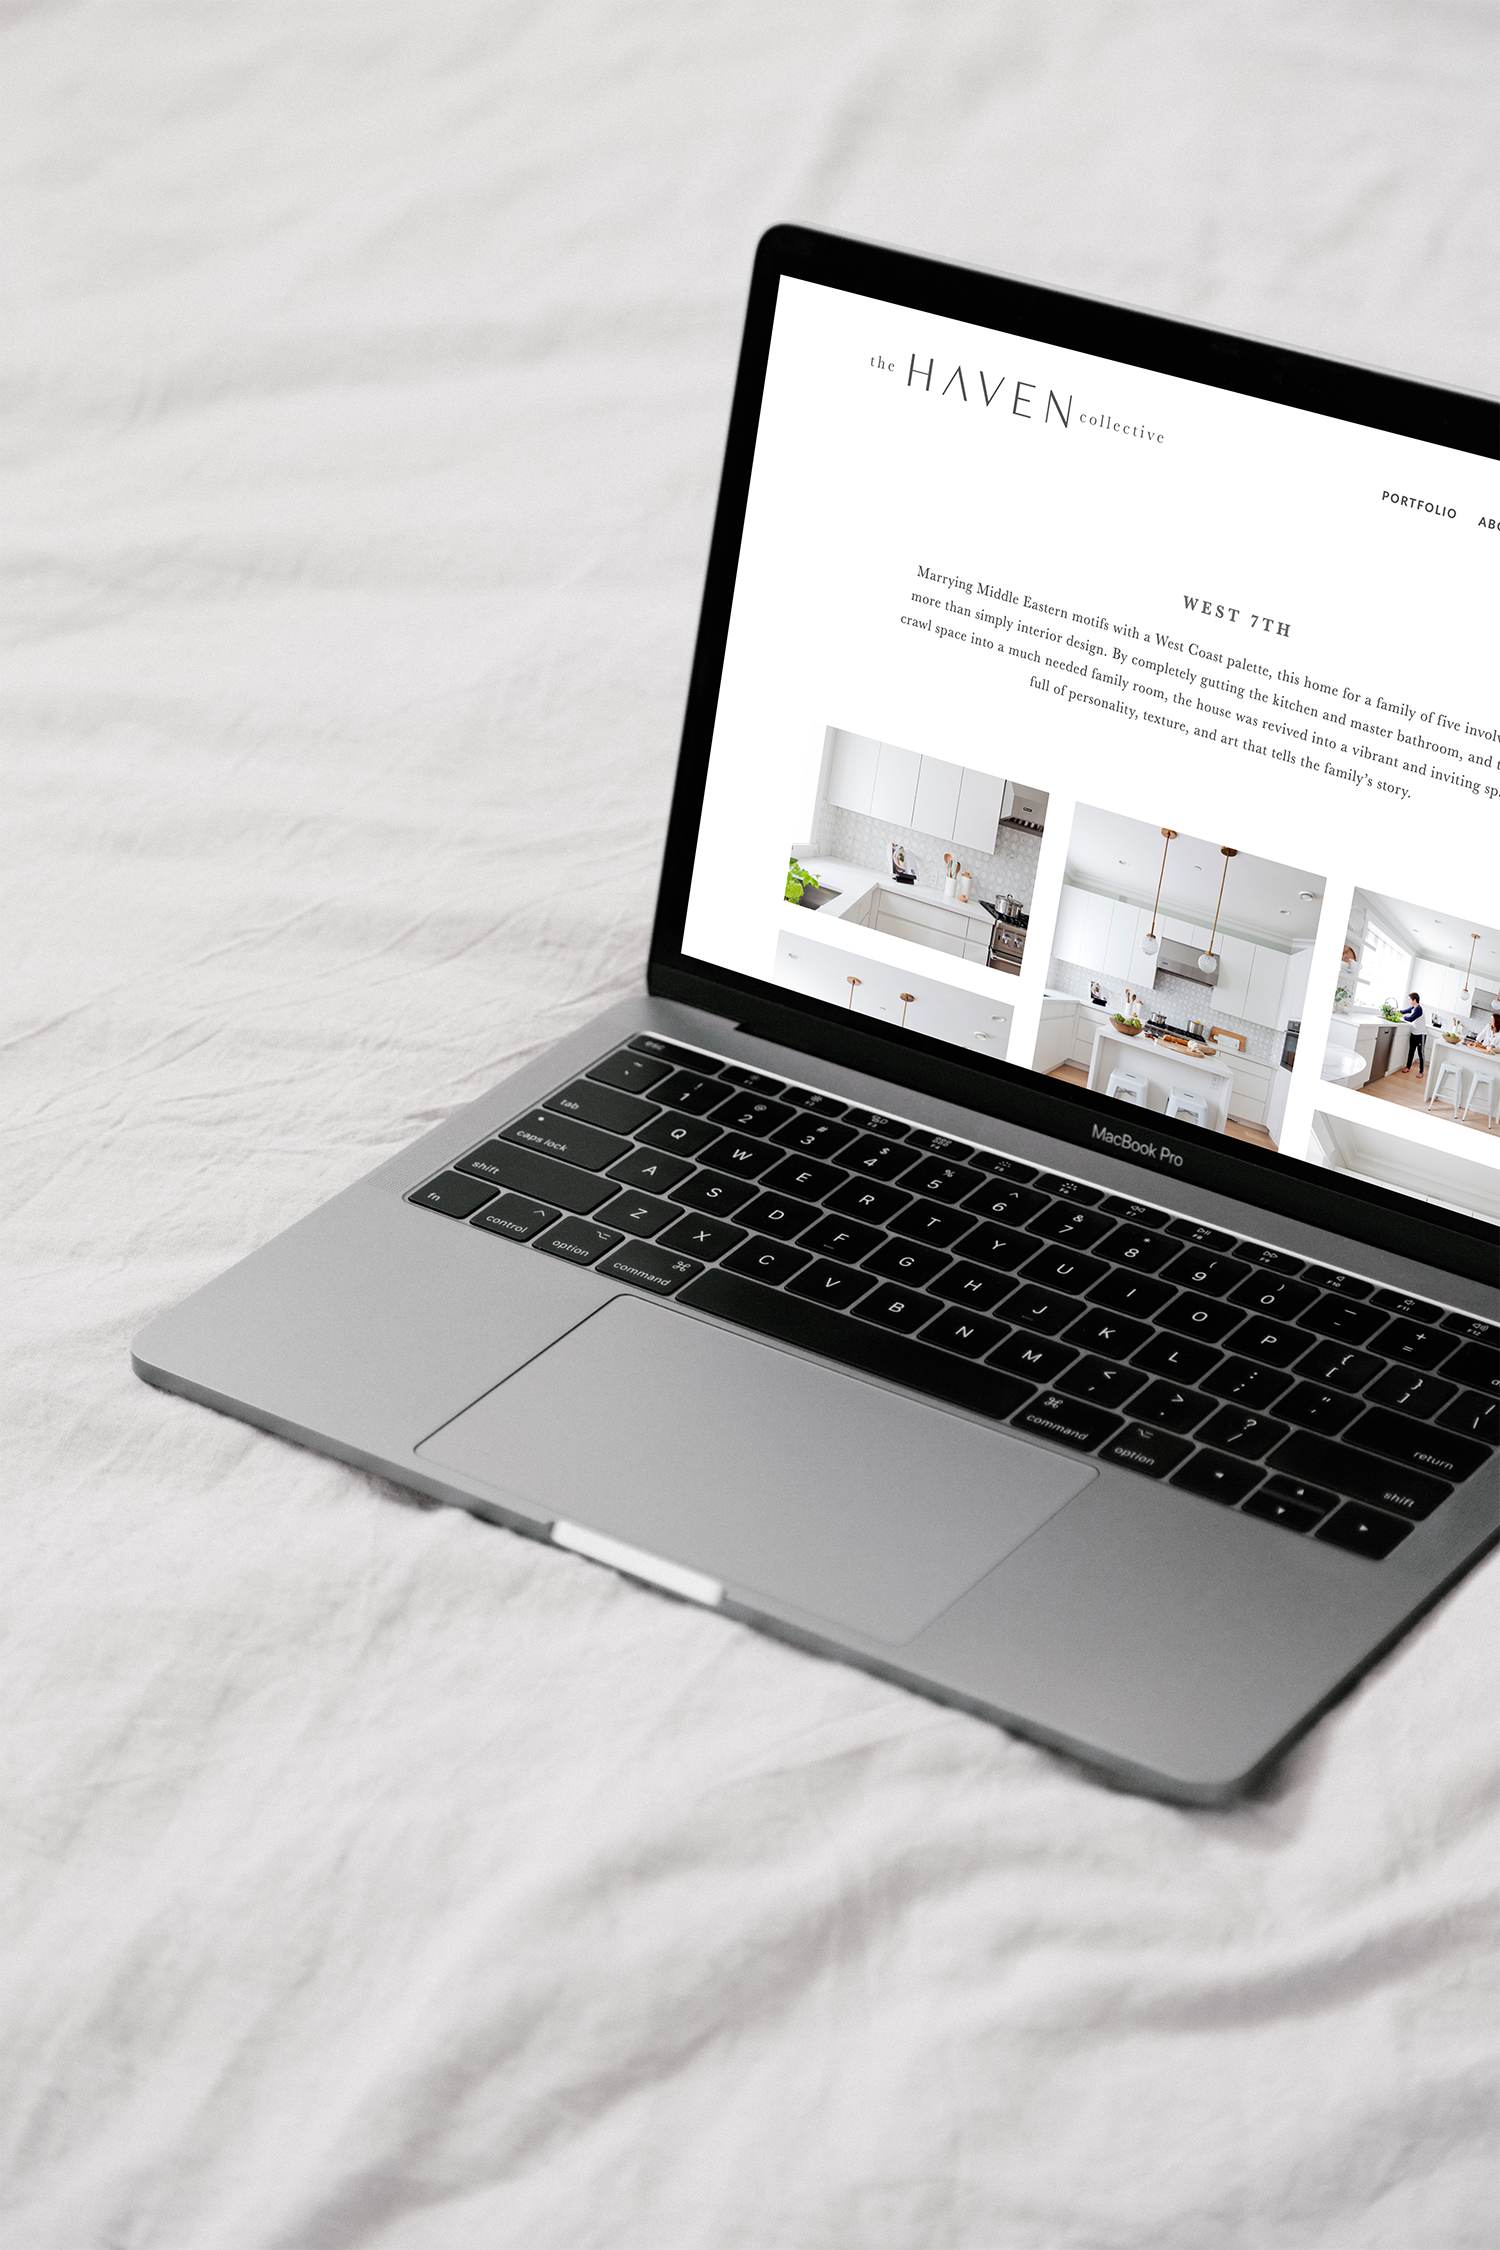 Haven Collective portfolio shown on a laptop on a bed